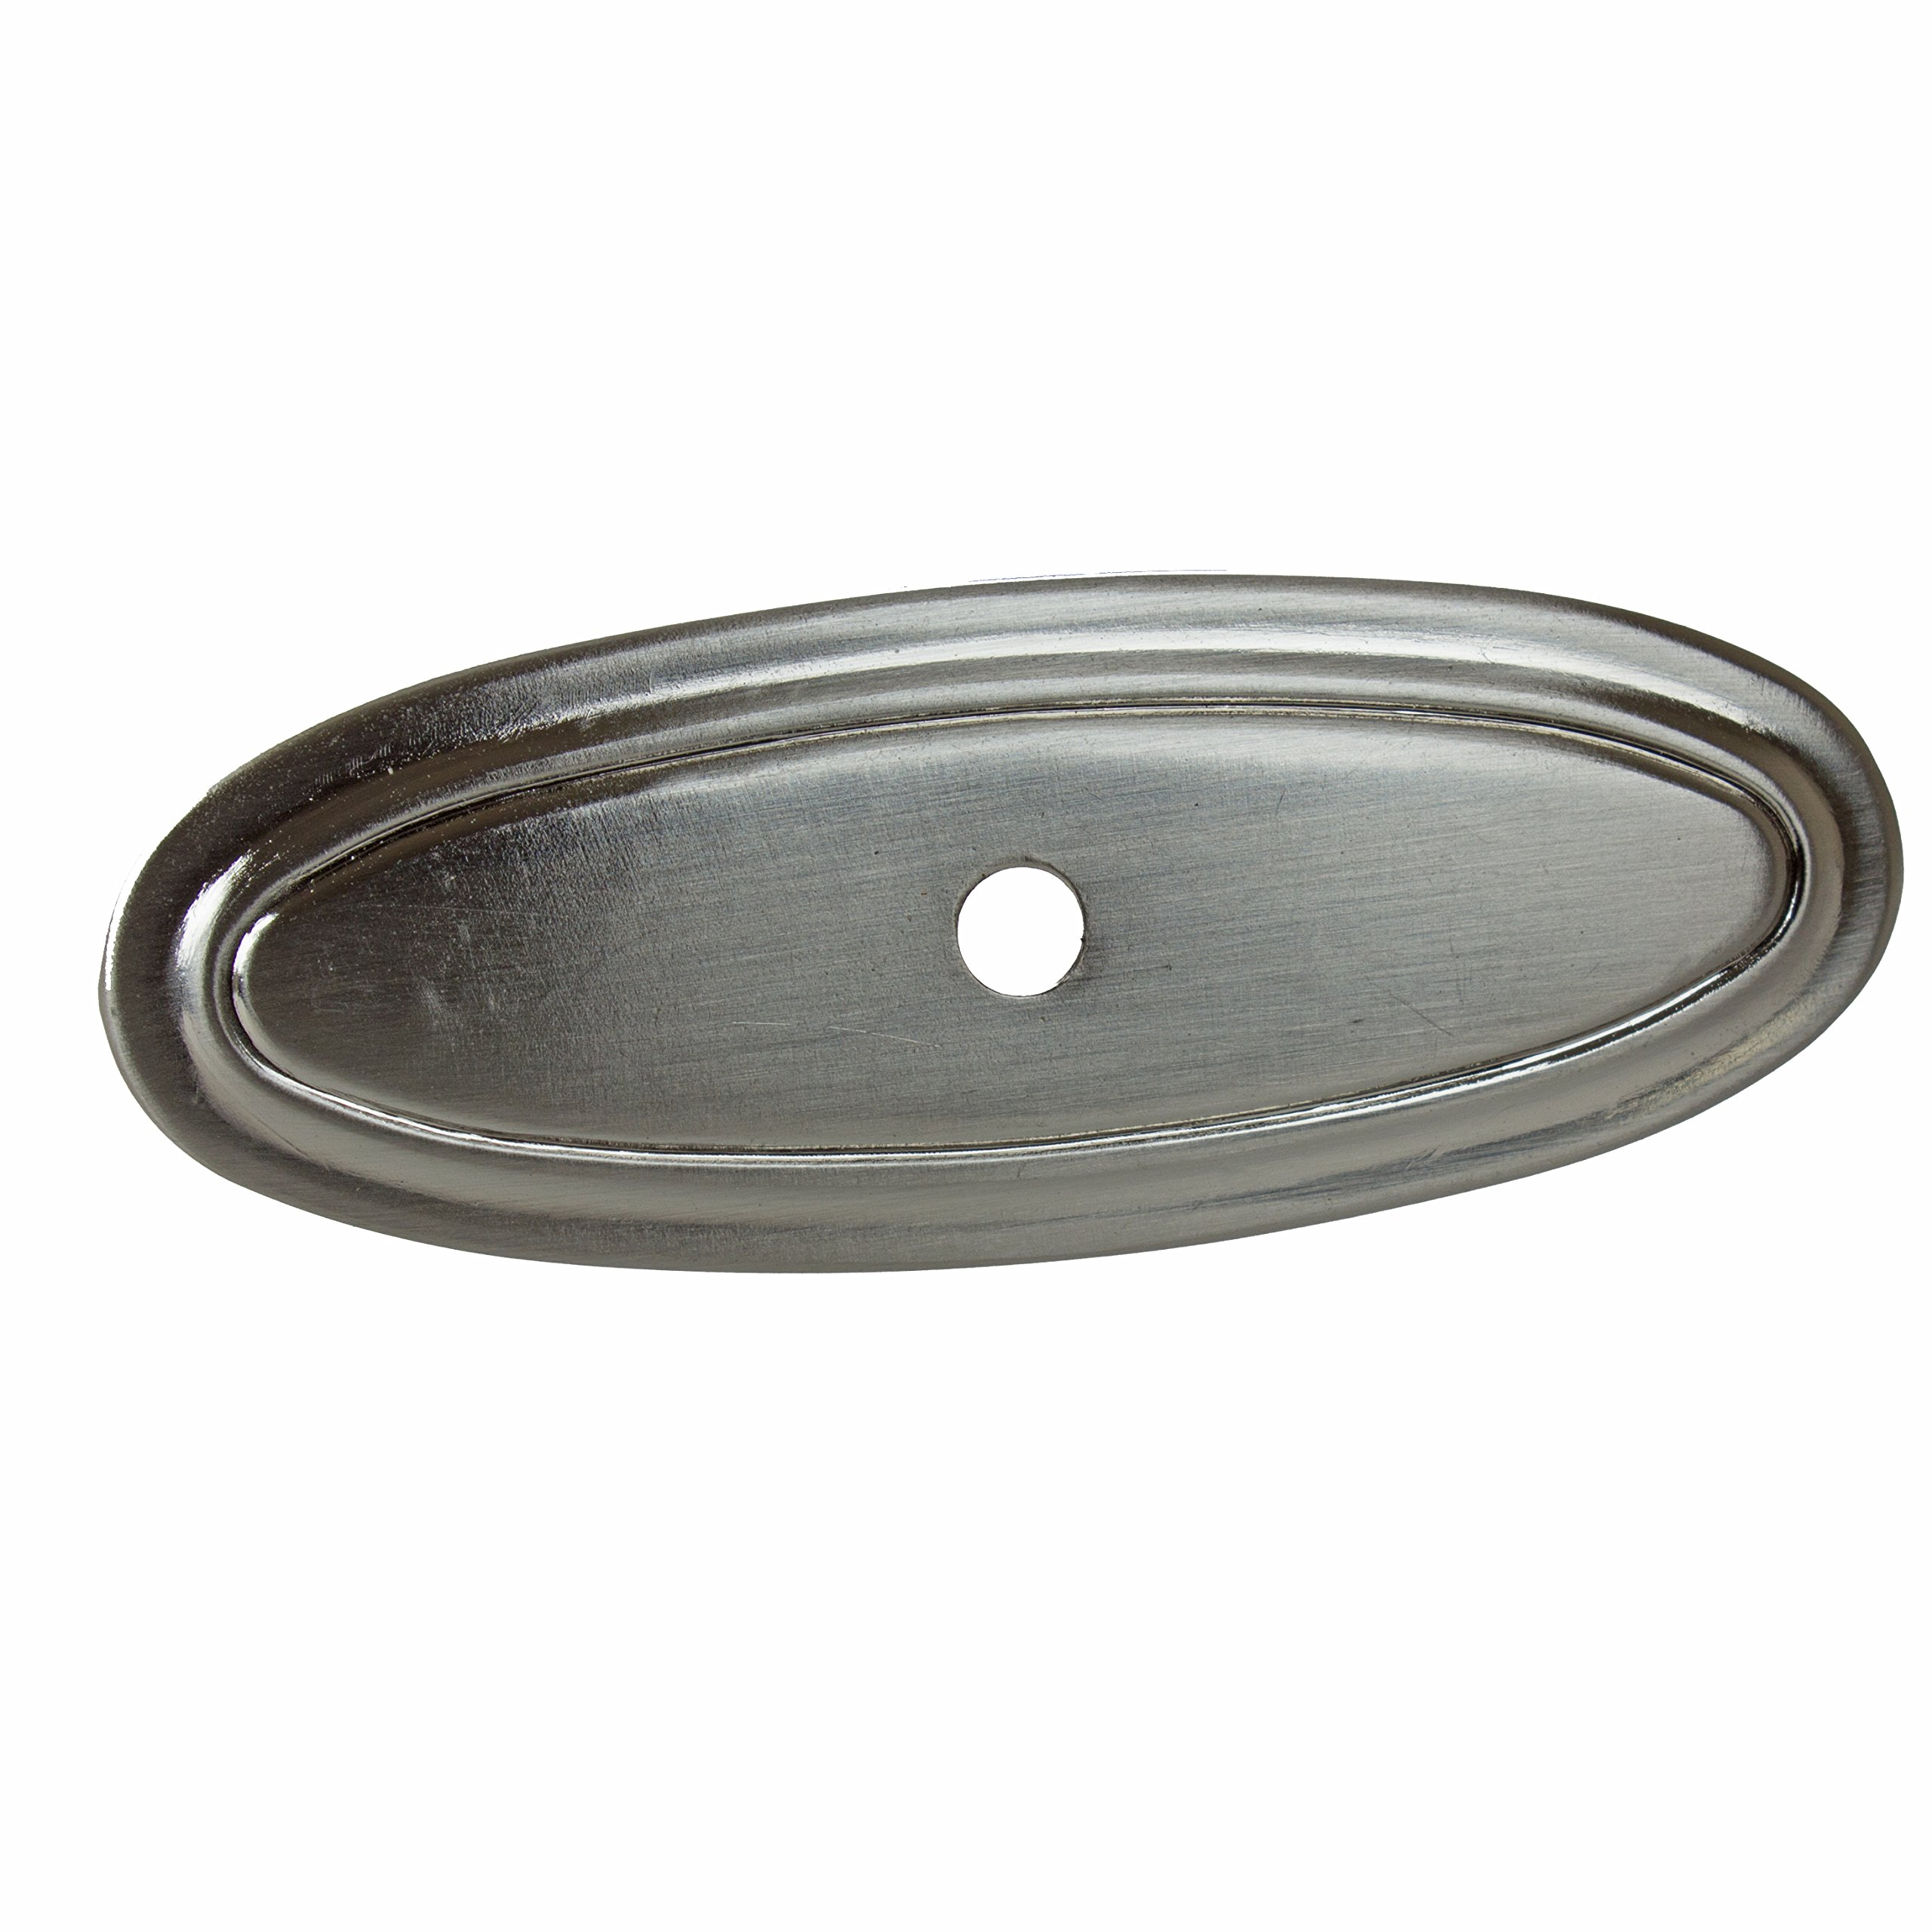 GlideRite Hardware 3 inch Long 1034-SN-25 Thin Oblong Ring Cabinet Back Plate, 25 Pack, 3'', Satin Nickel, Finish